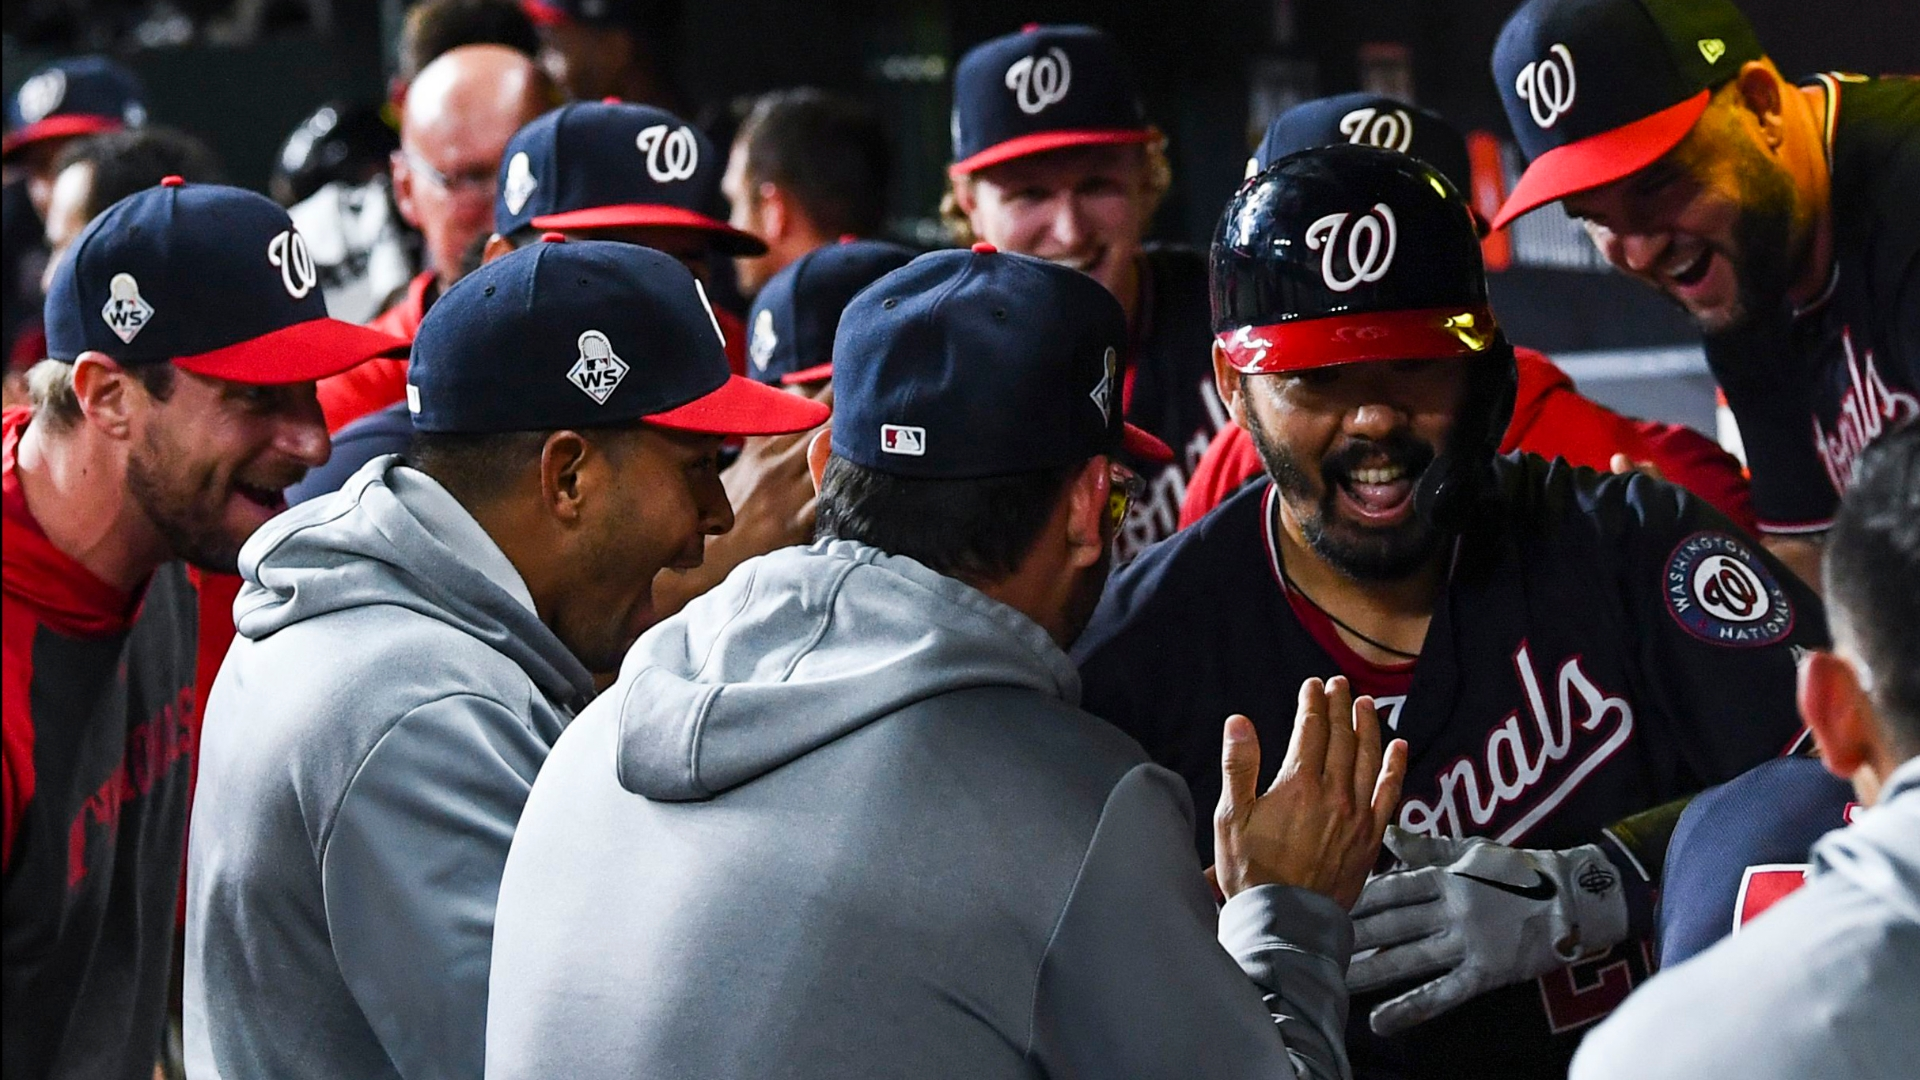 The Nationals are meeting the World Series moment, and the Astros are shrinking from it